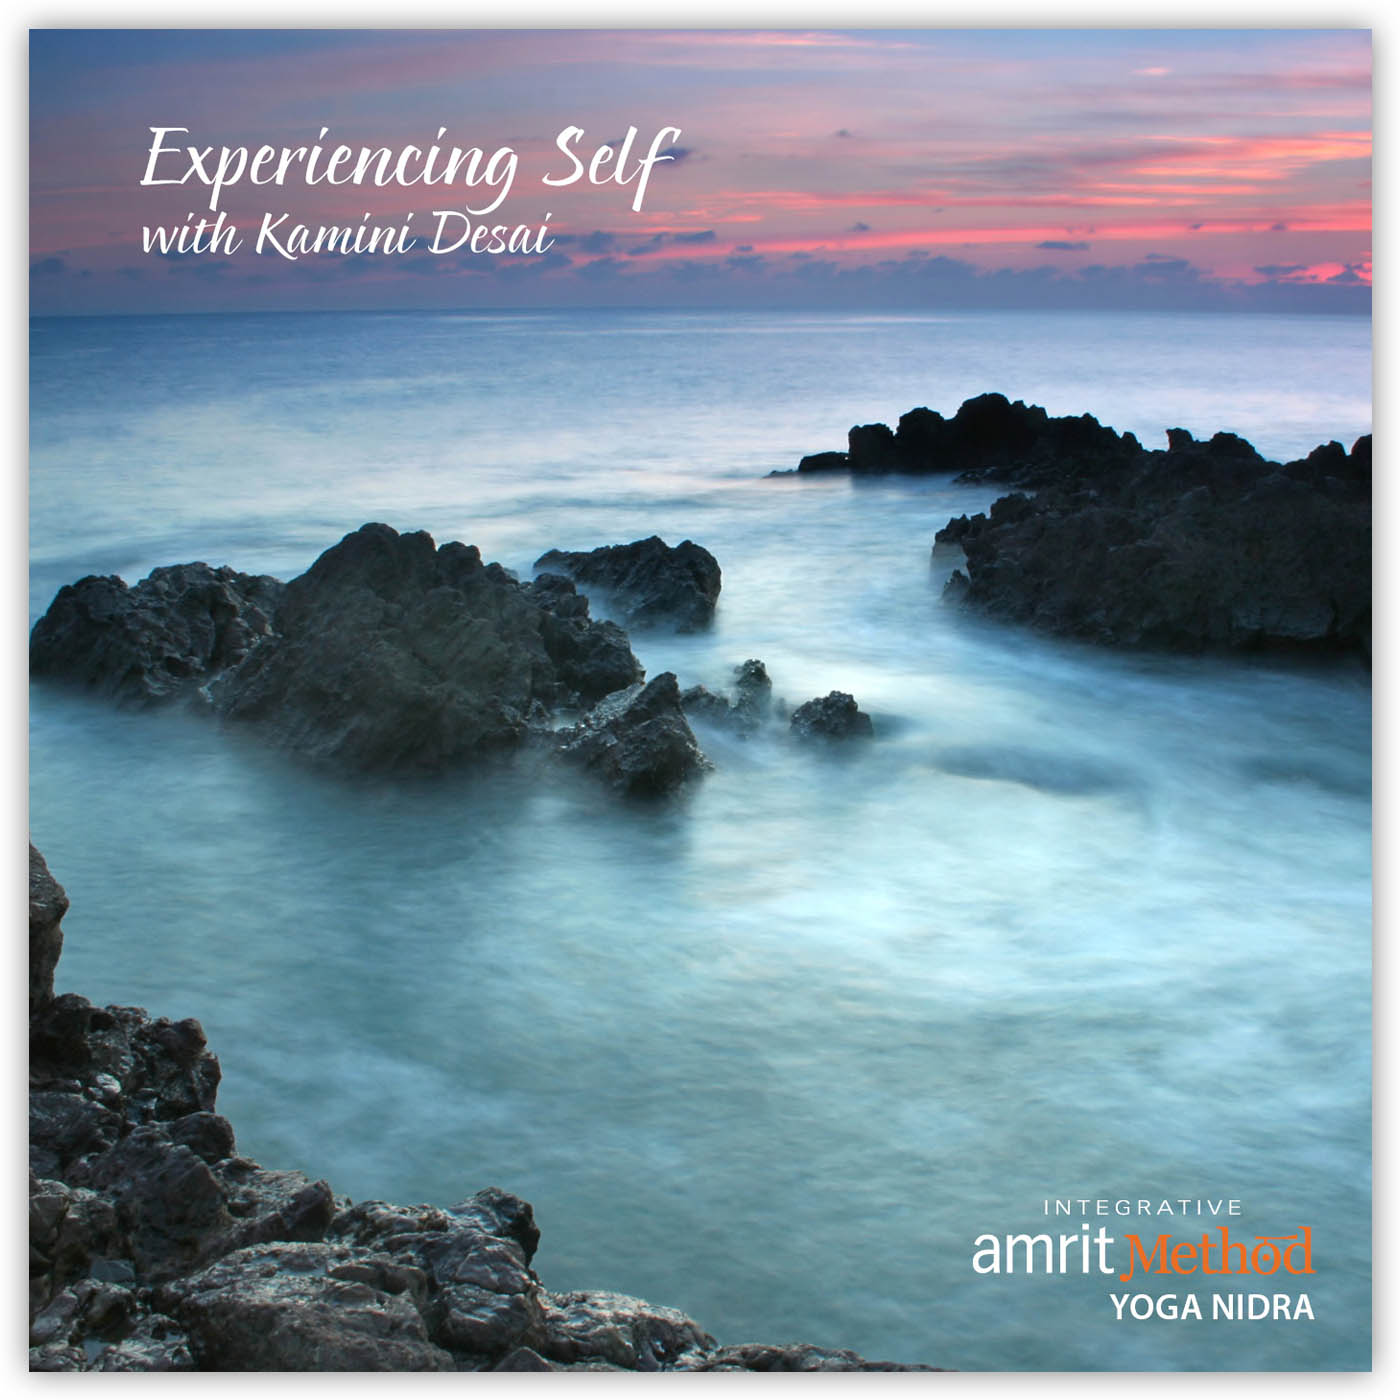 Yoga Nidra – Experiencing Self with Kamini Desai PhD